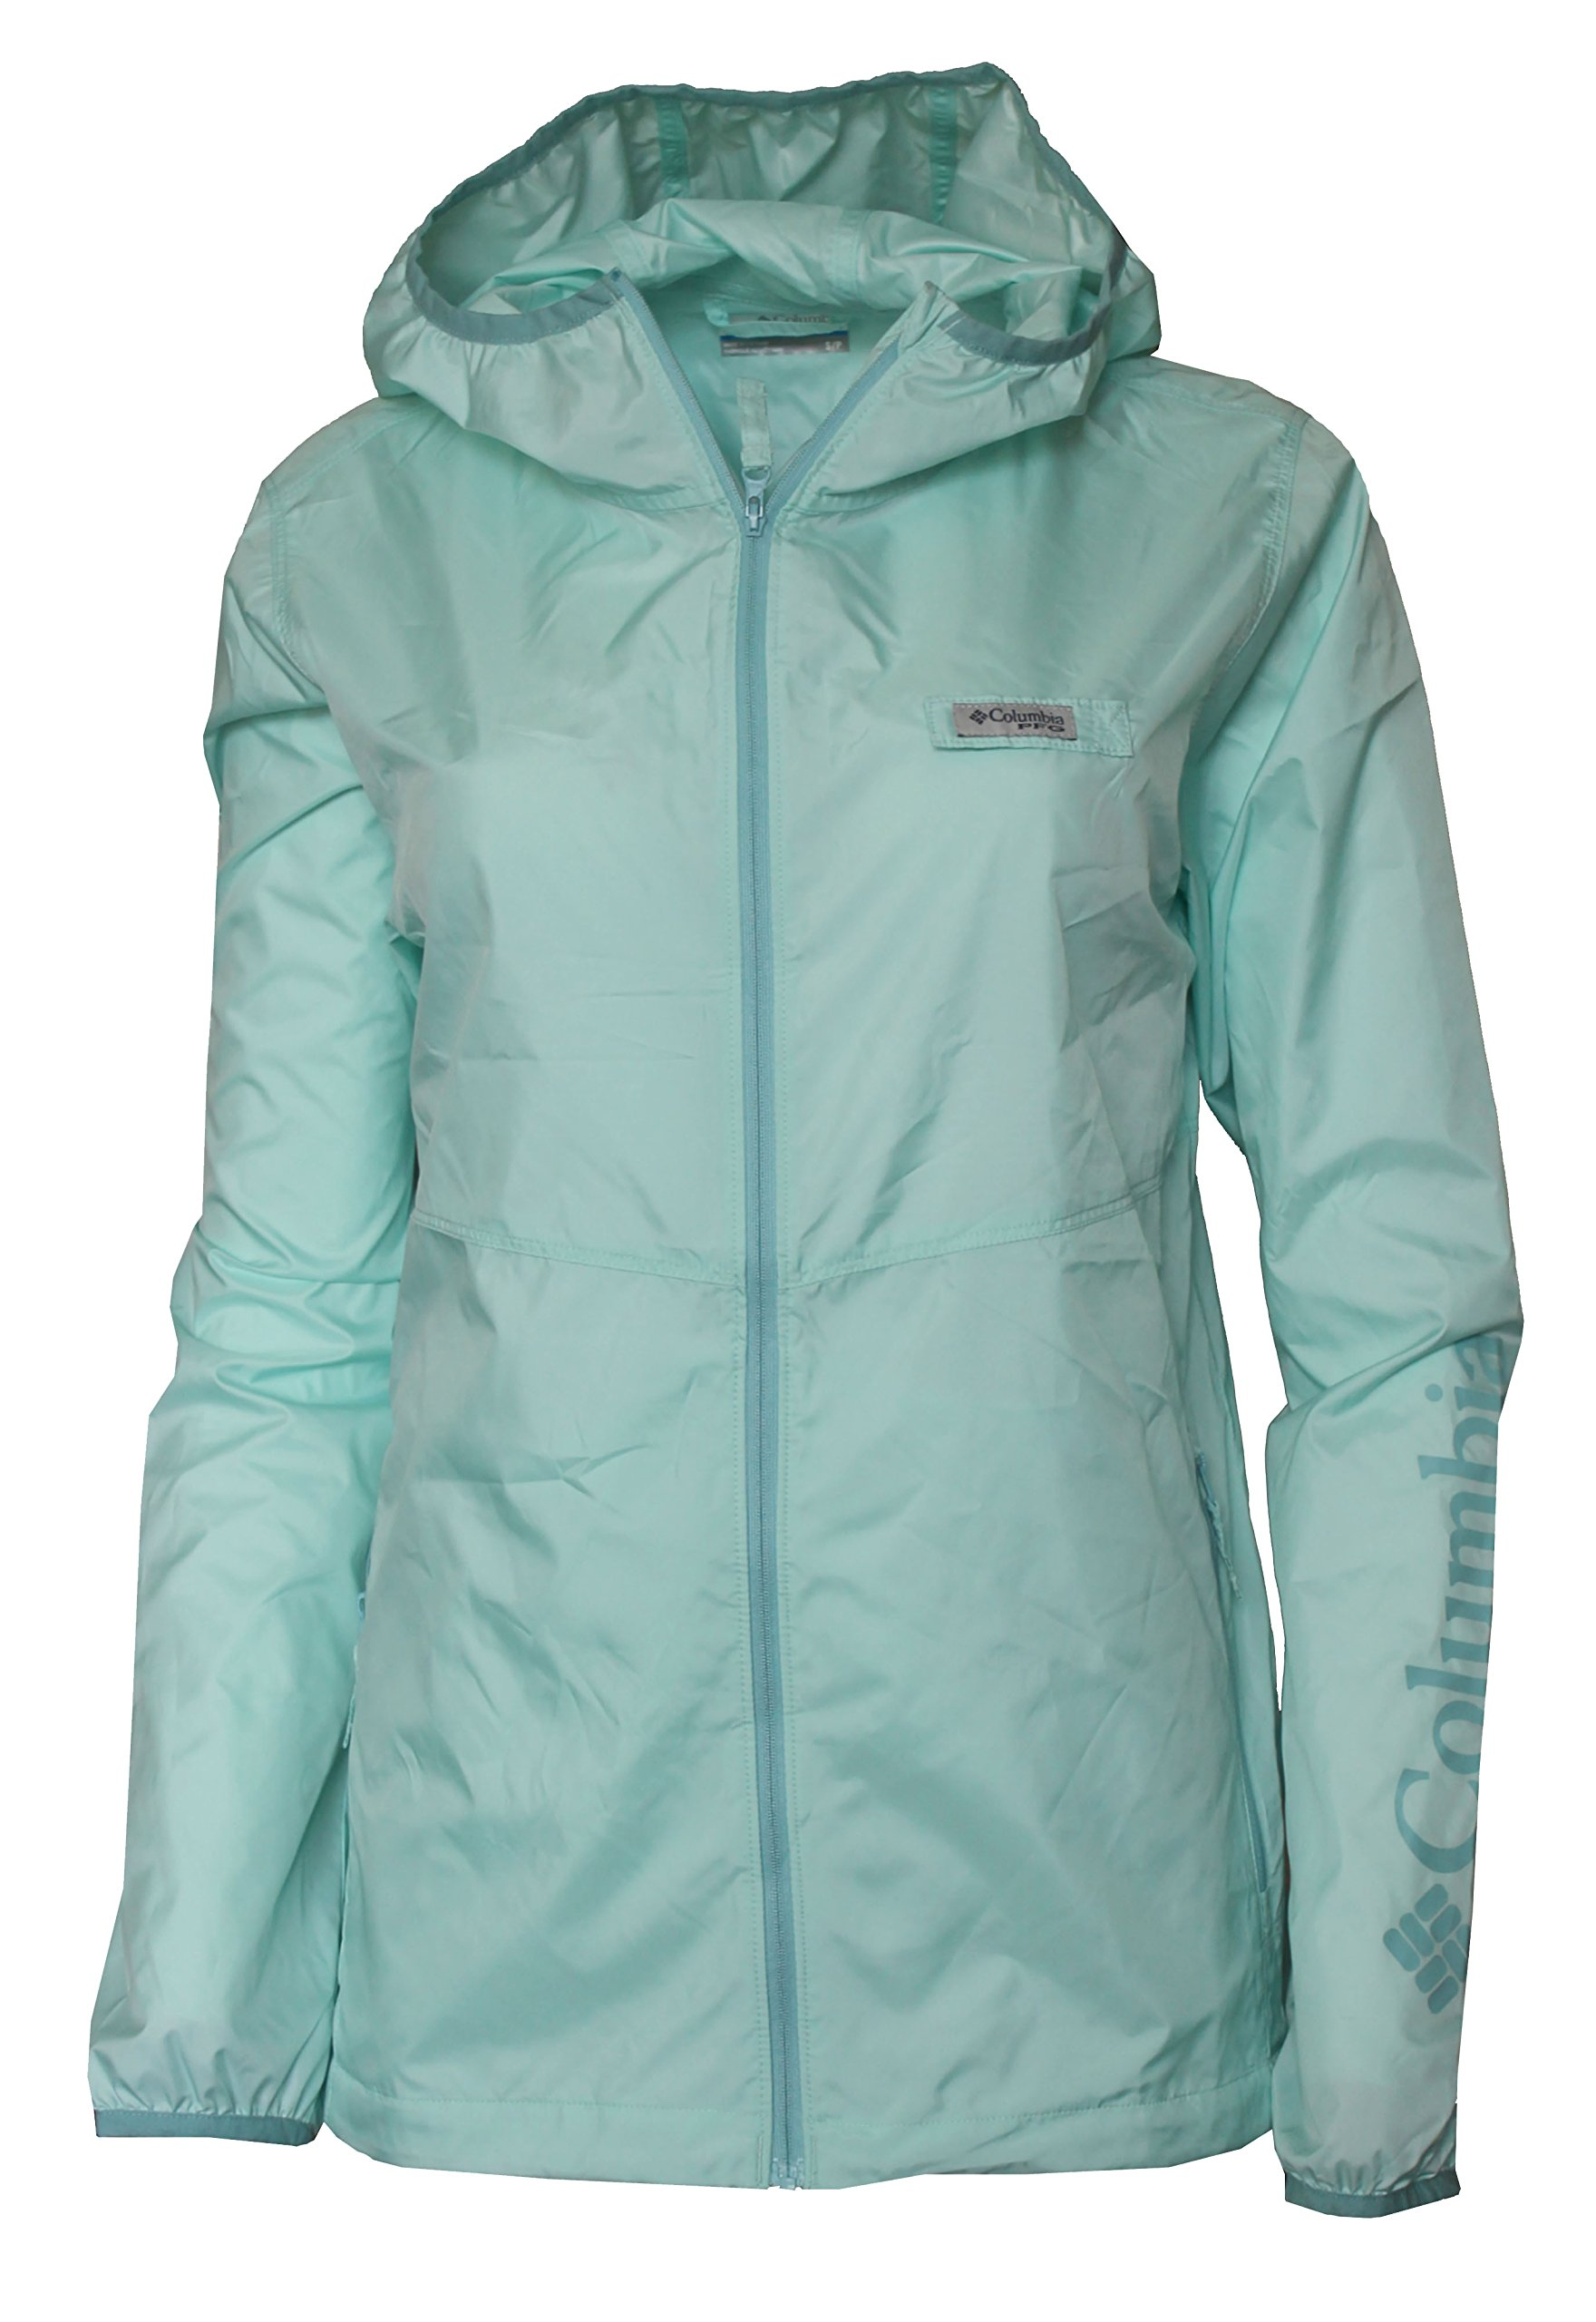 Columbia Women's PFG Morning View Windbreaker Full Zip Shell Hooded Jacket (Blue Glass, XL)